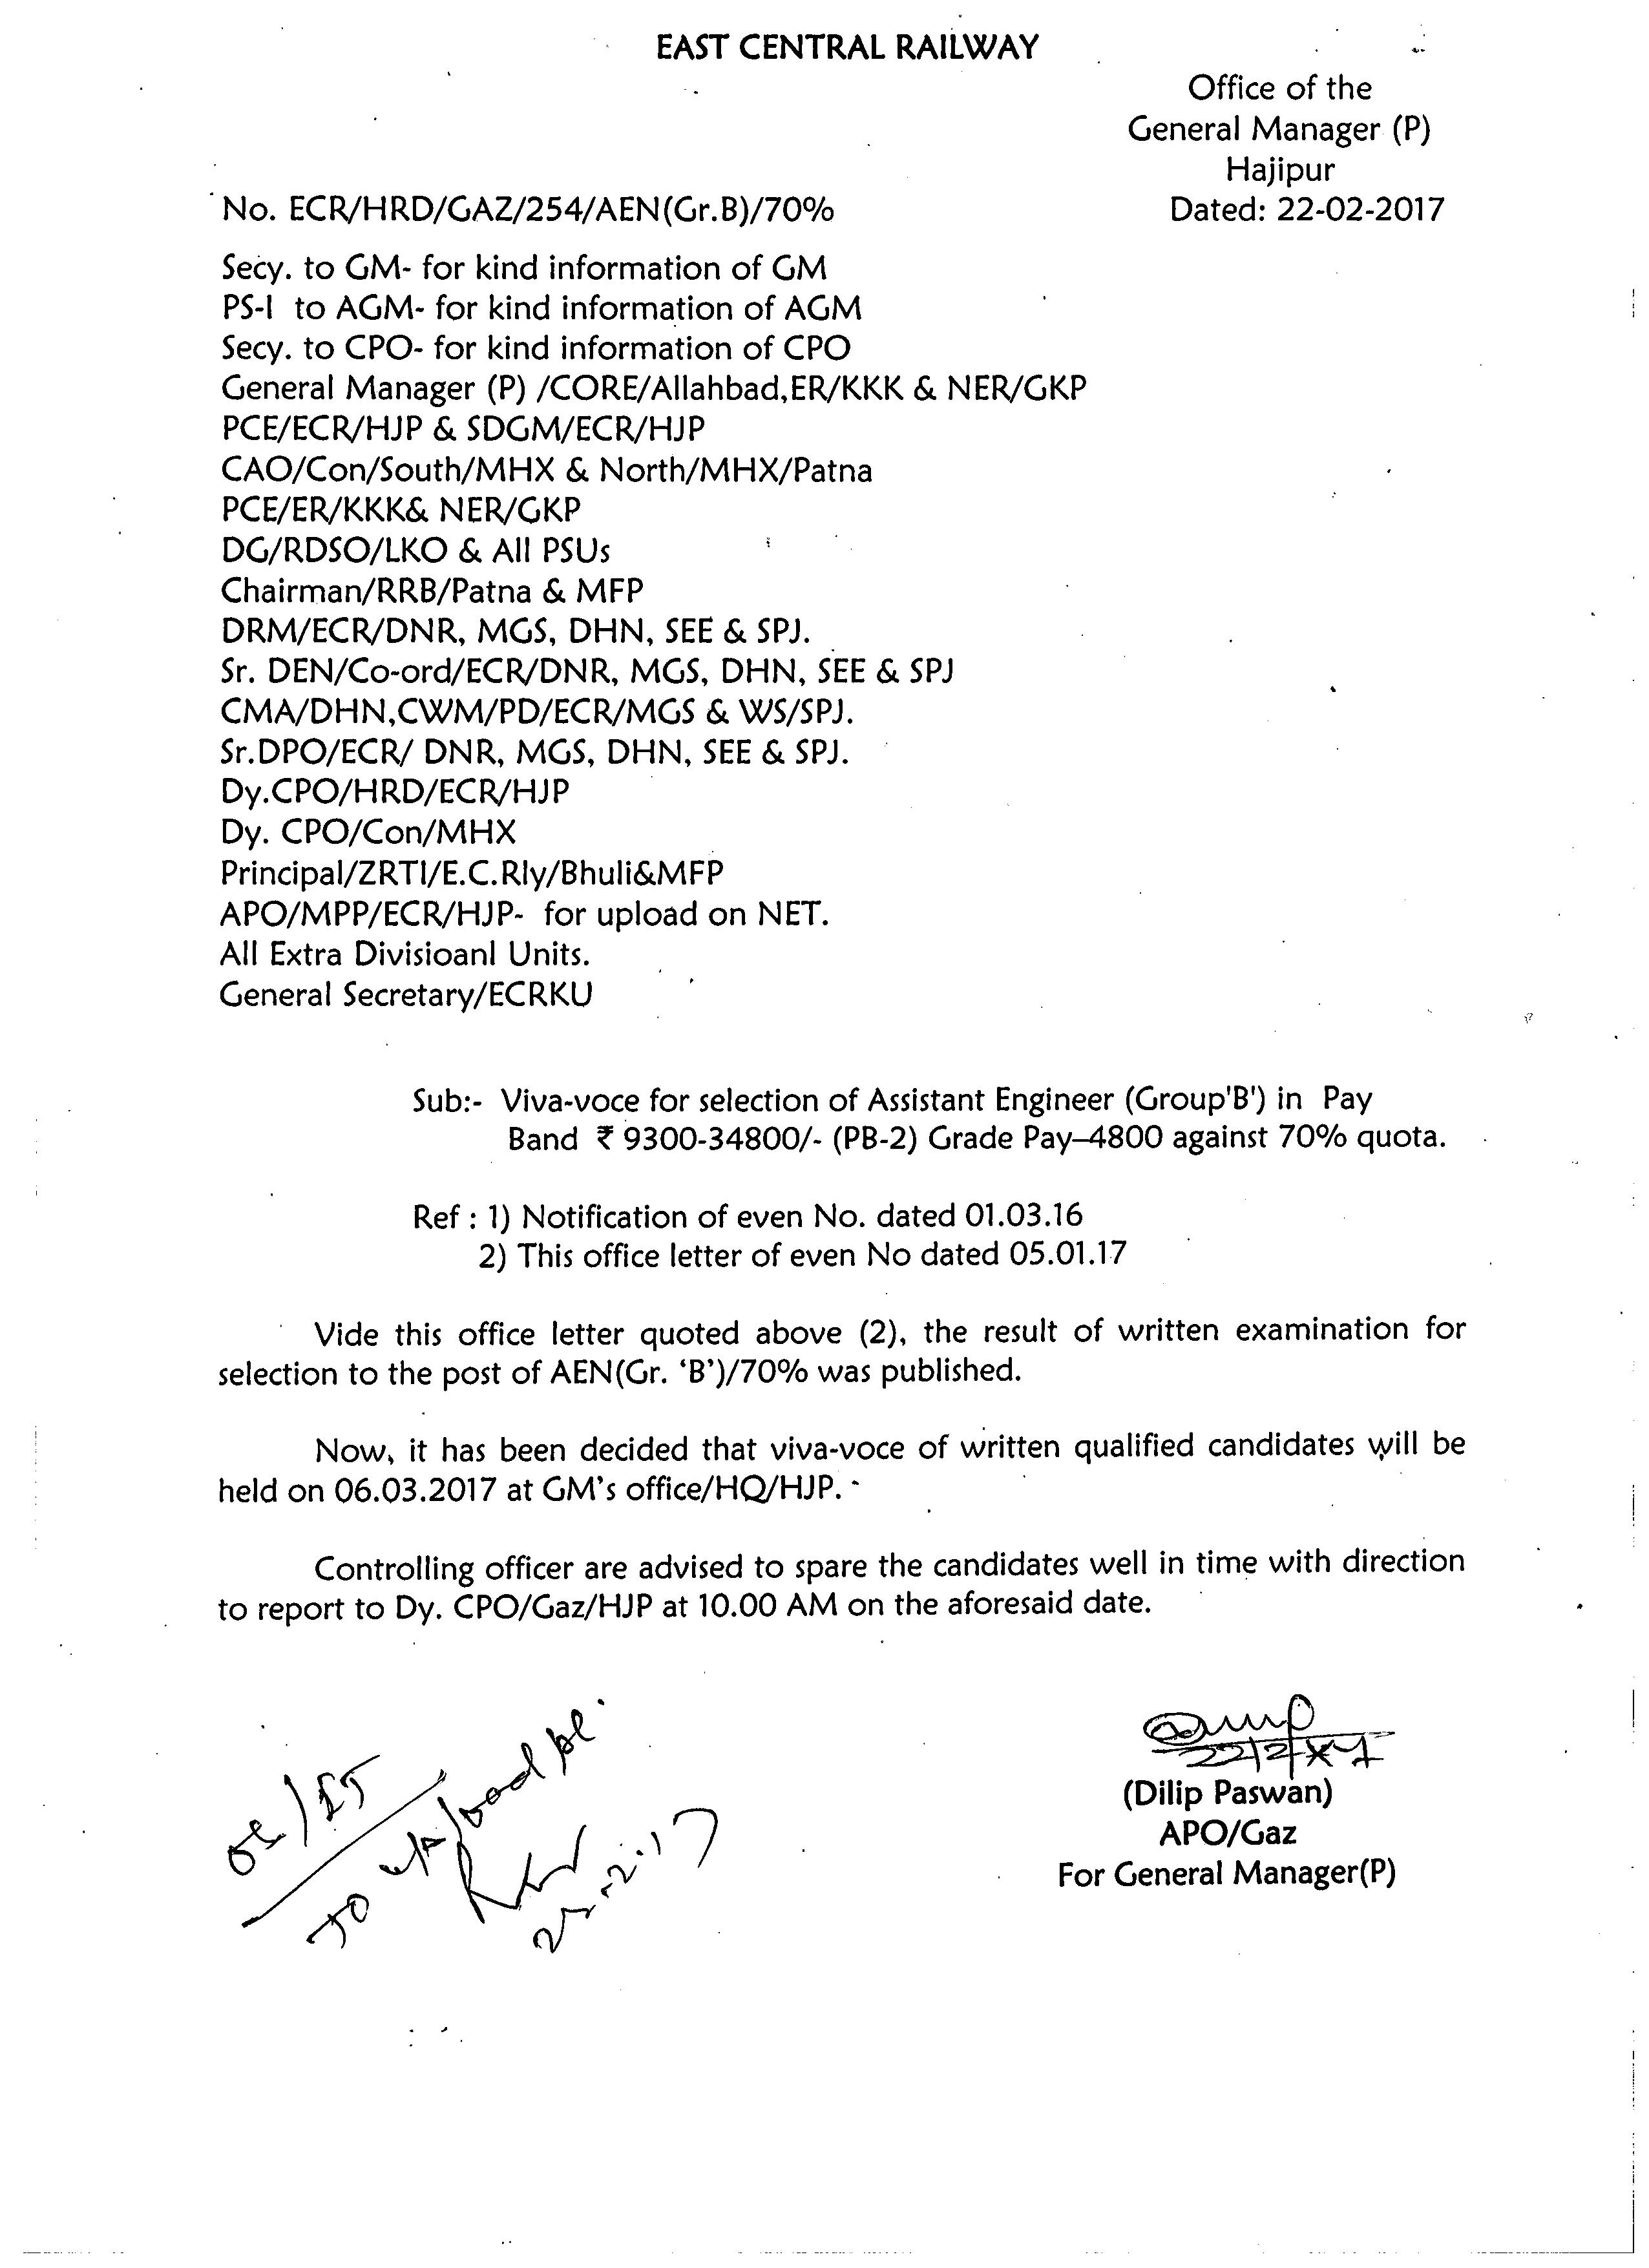 Deputation To Rites Formation For Panel Of Inspection Engineers In Civil  Mechaniacal, Electrical And M&c Discipline Dt 20022017